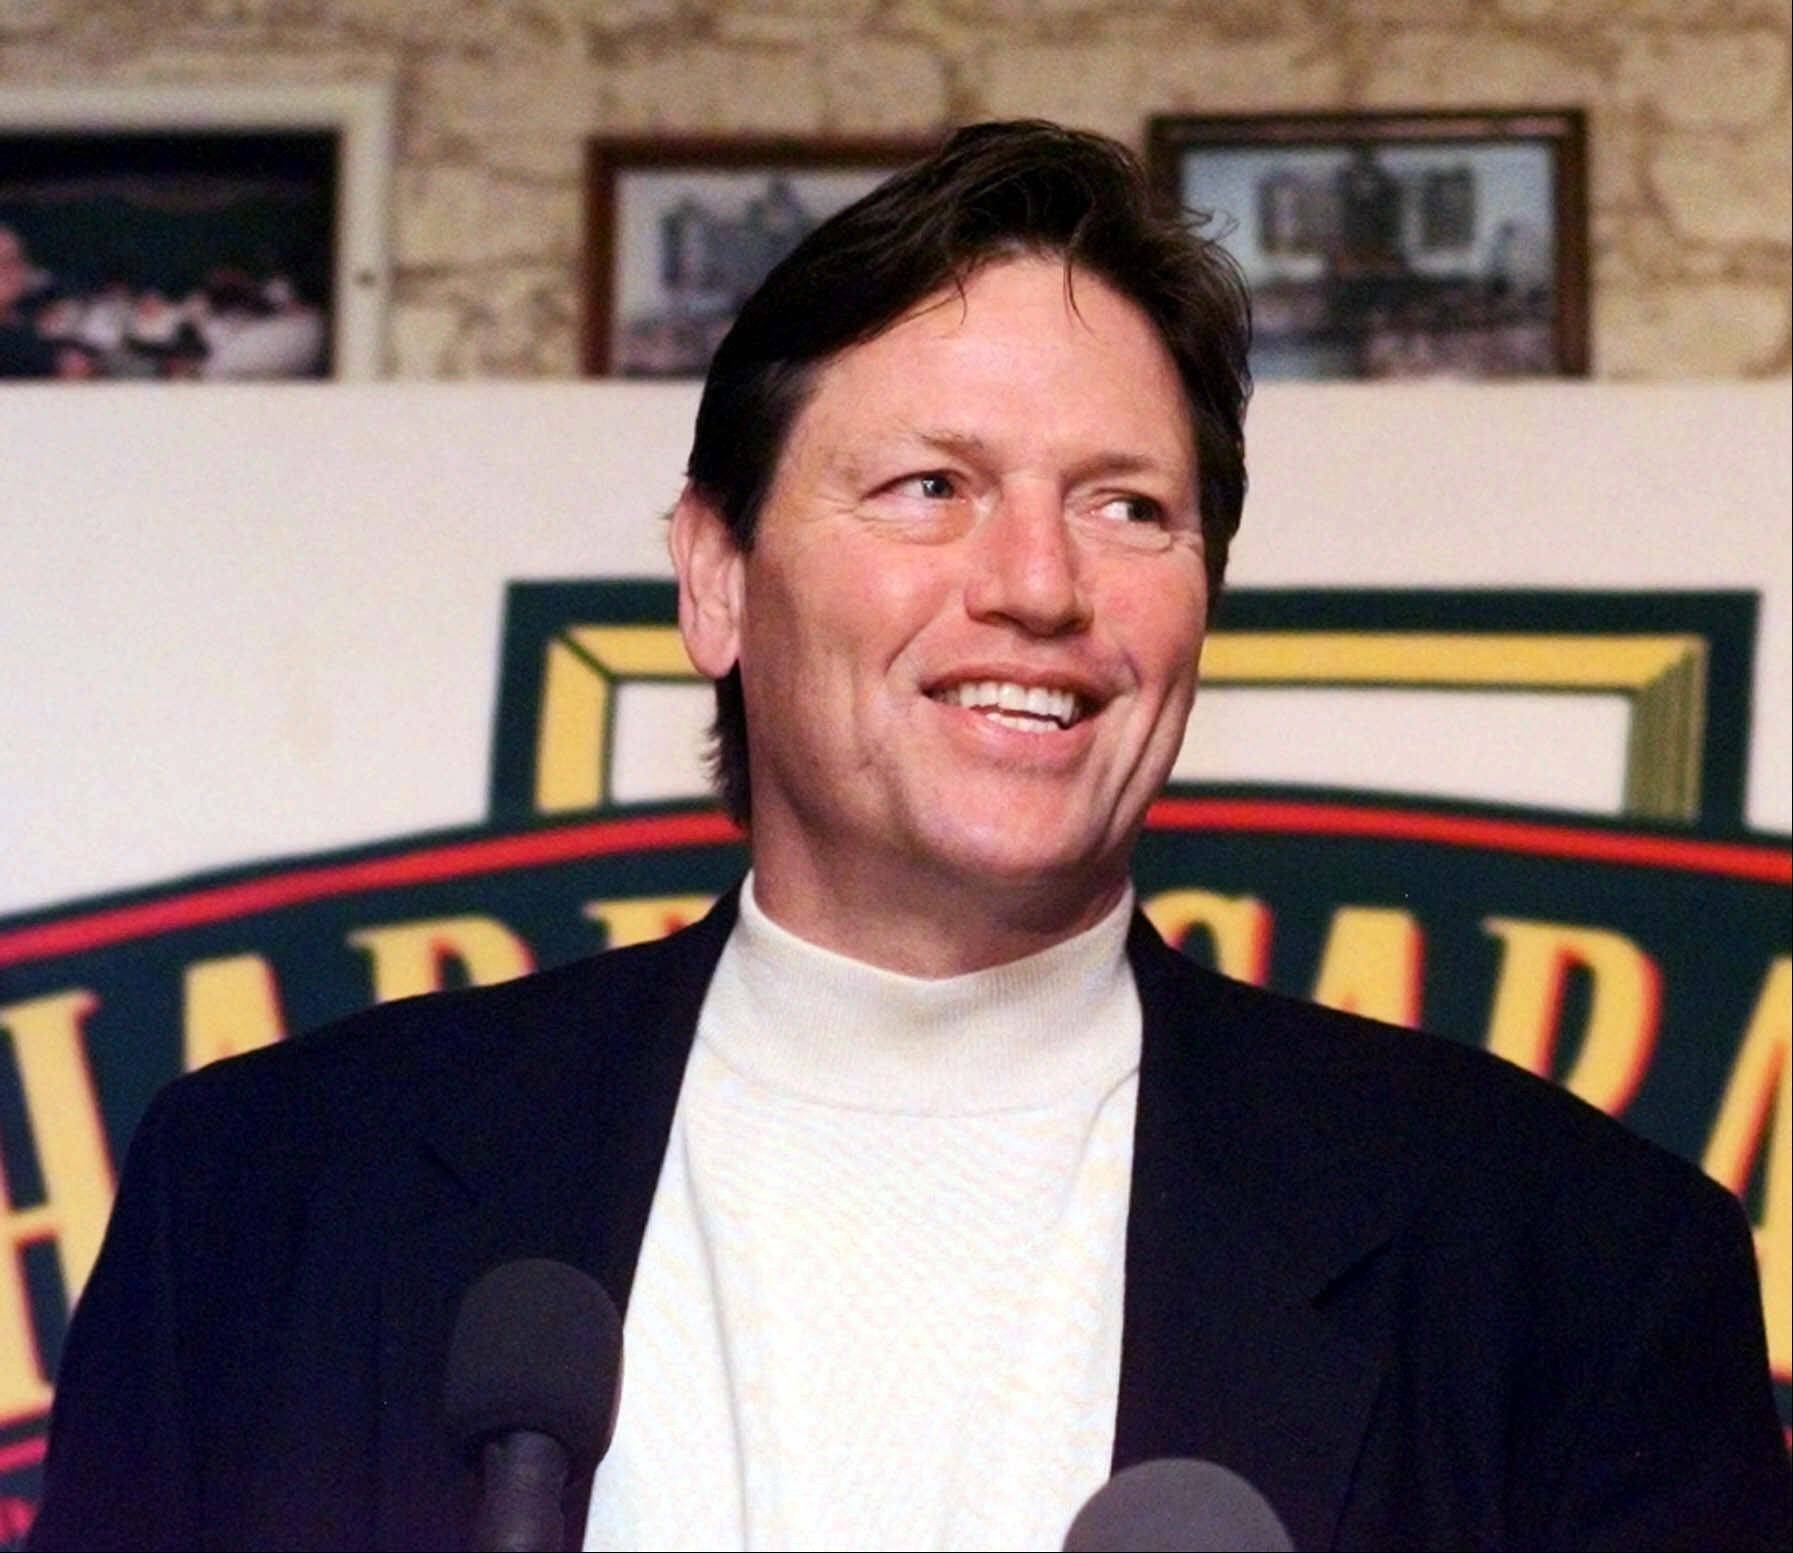 Carlton Fisk smiles as he answers questions from the media Tuesday, Jan. 11, 2000 in at Harry Caray's Restaurant in Chicago following the announcement that he had been elected to the Baseball Hall of Fame.